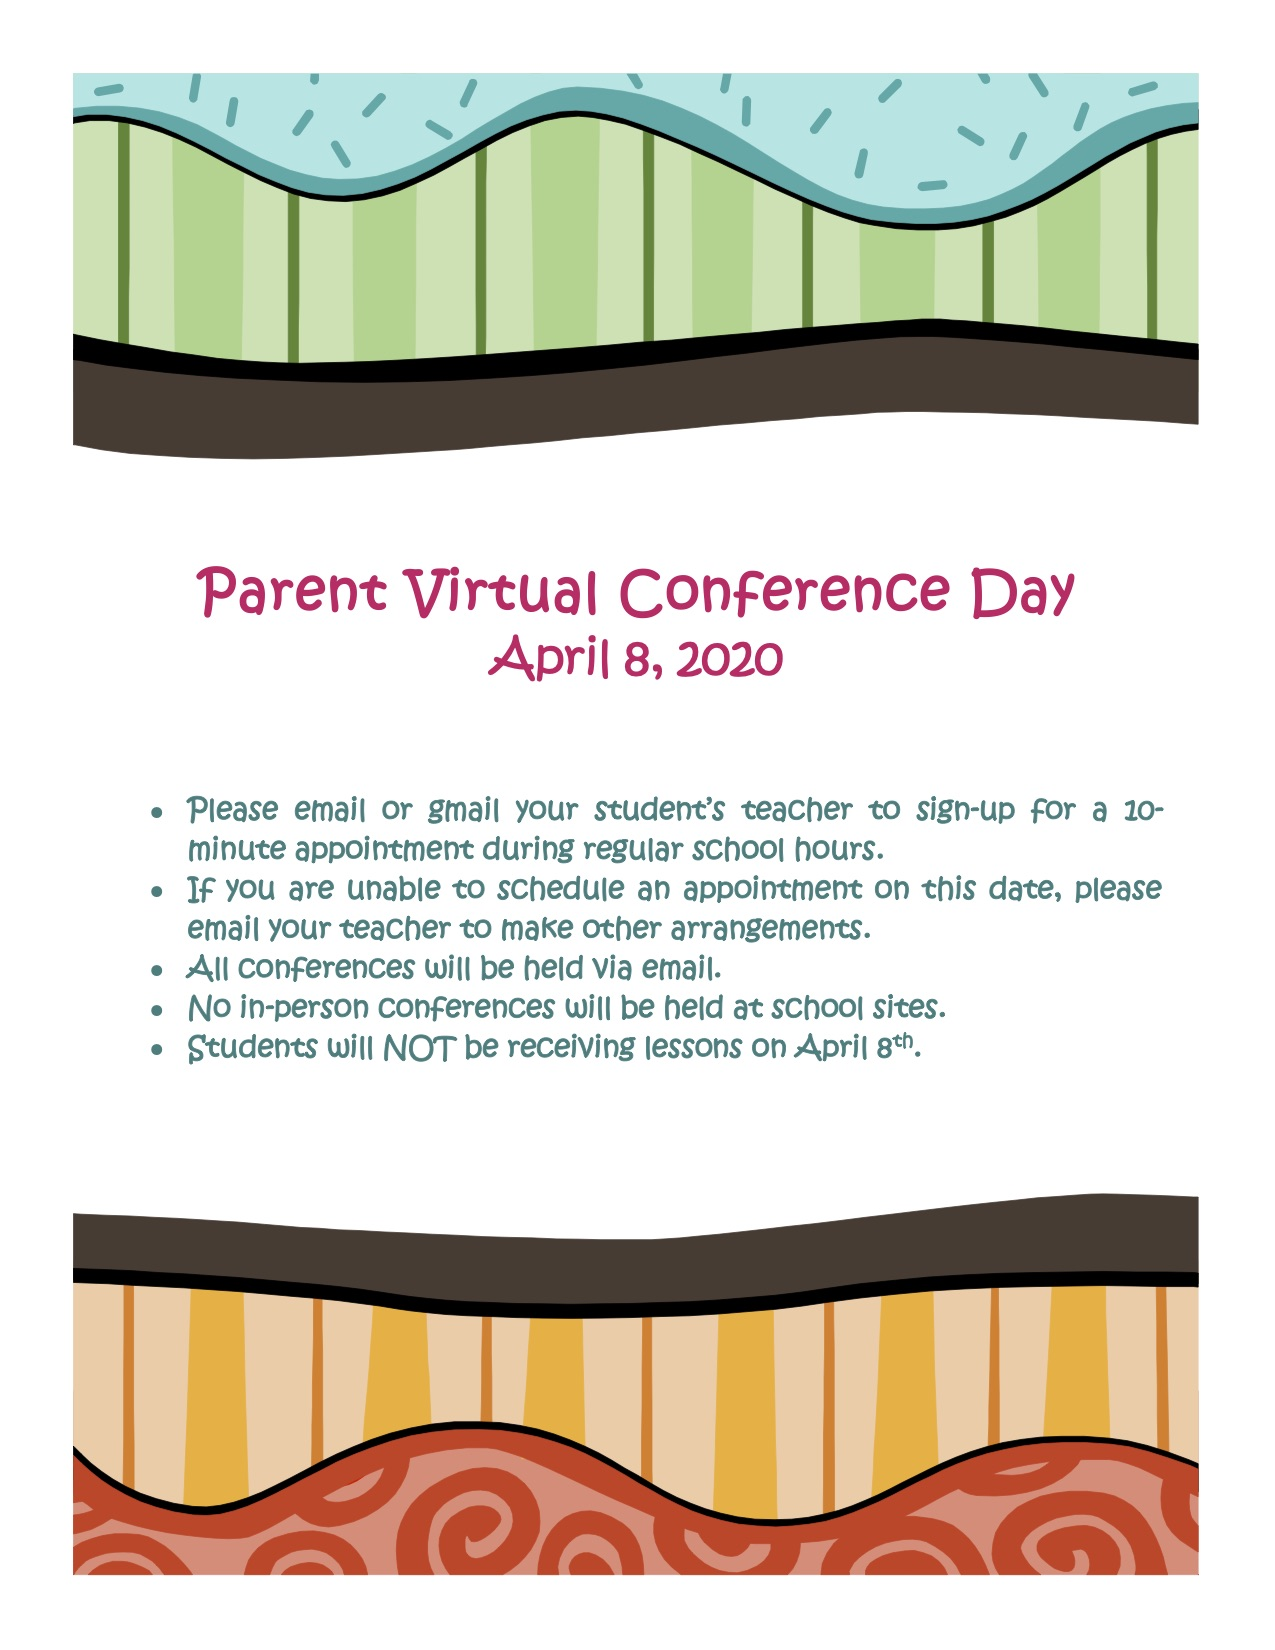 Parent Virtual Conference Day flyer